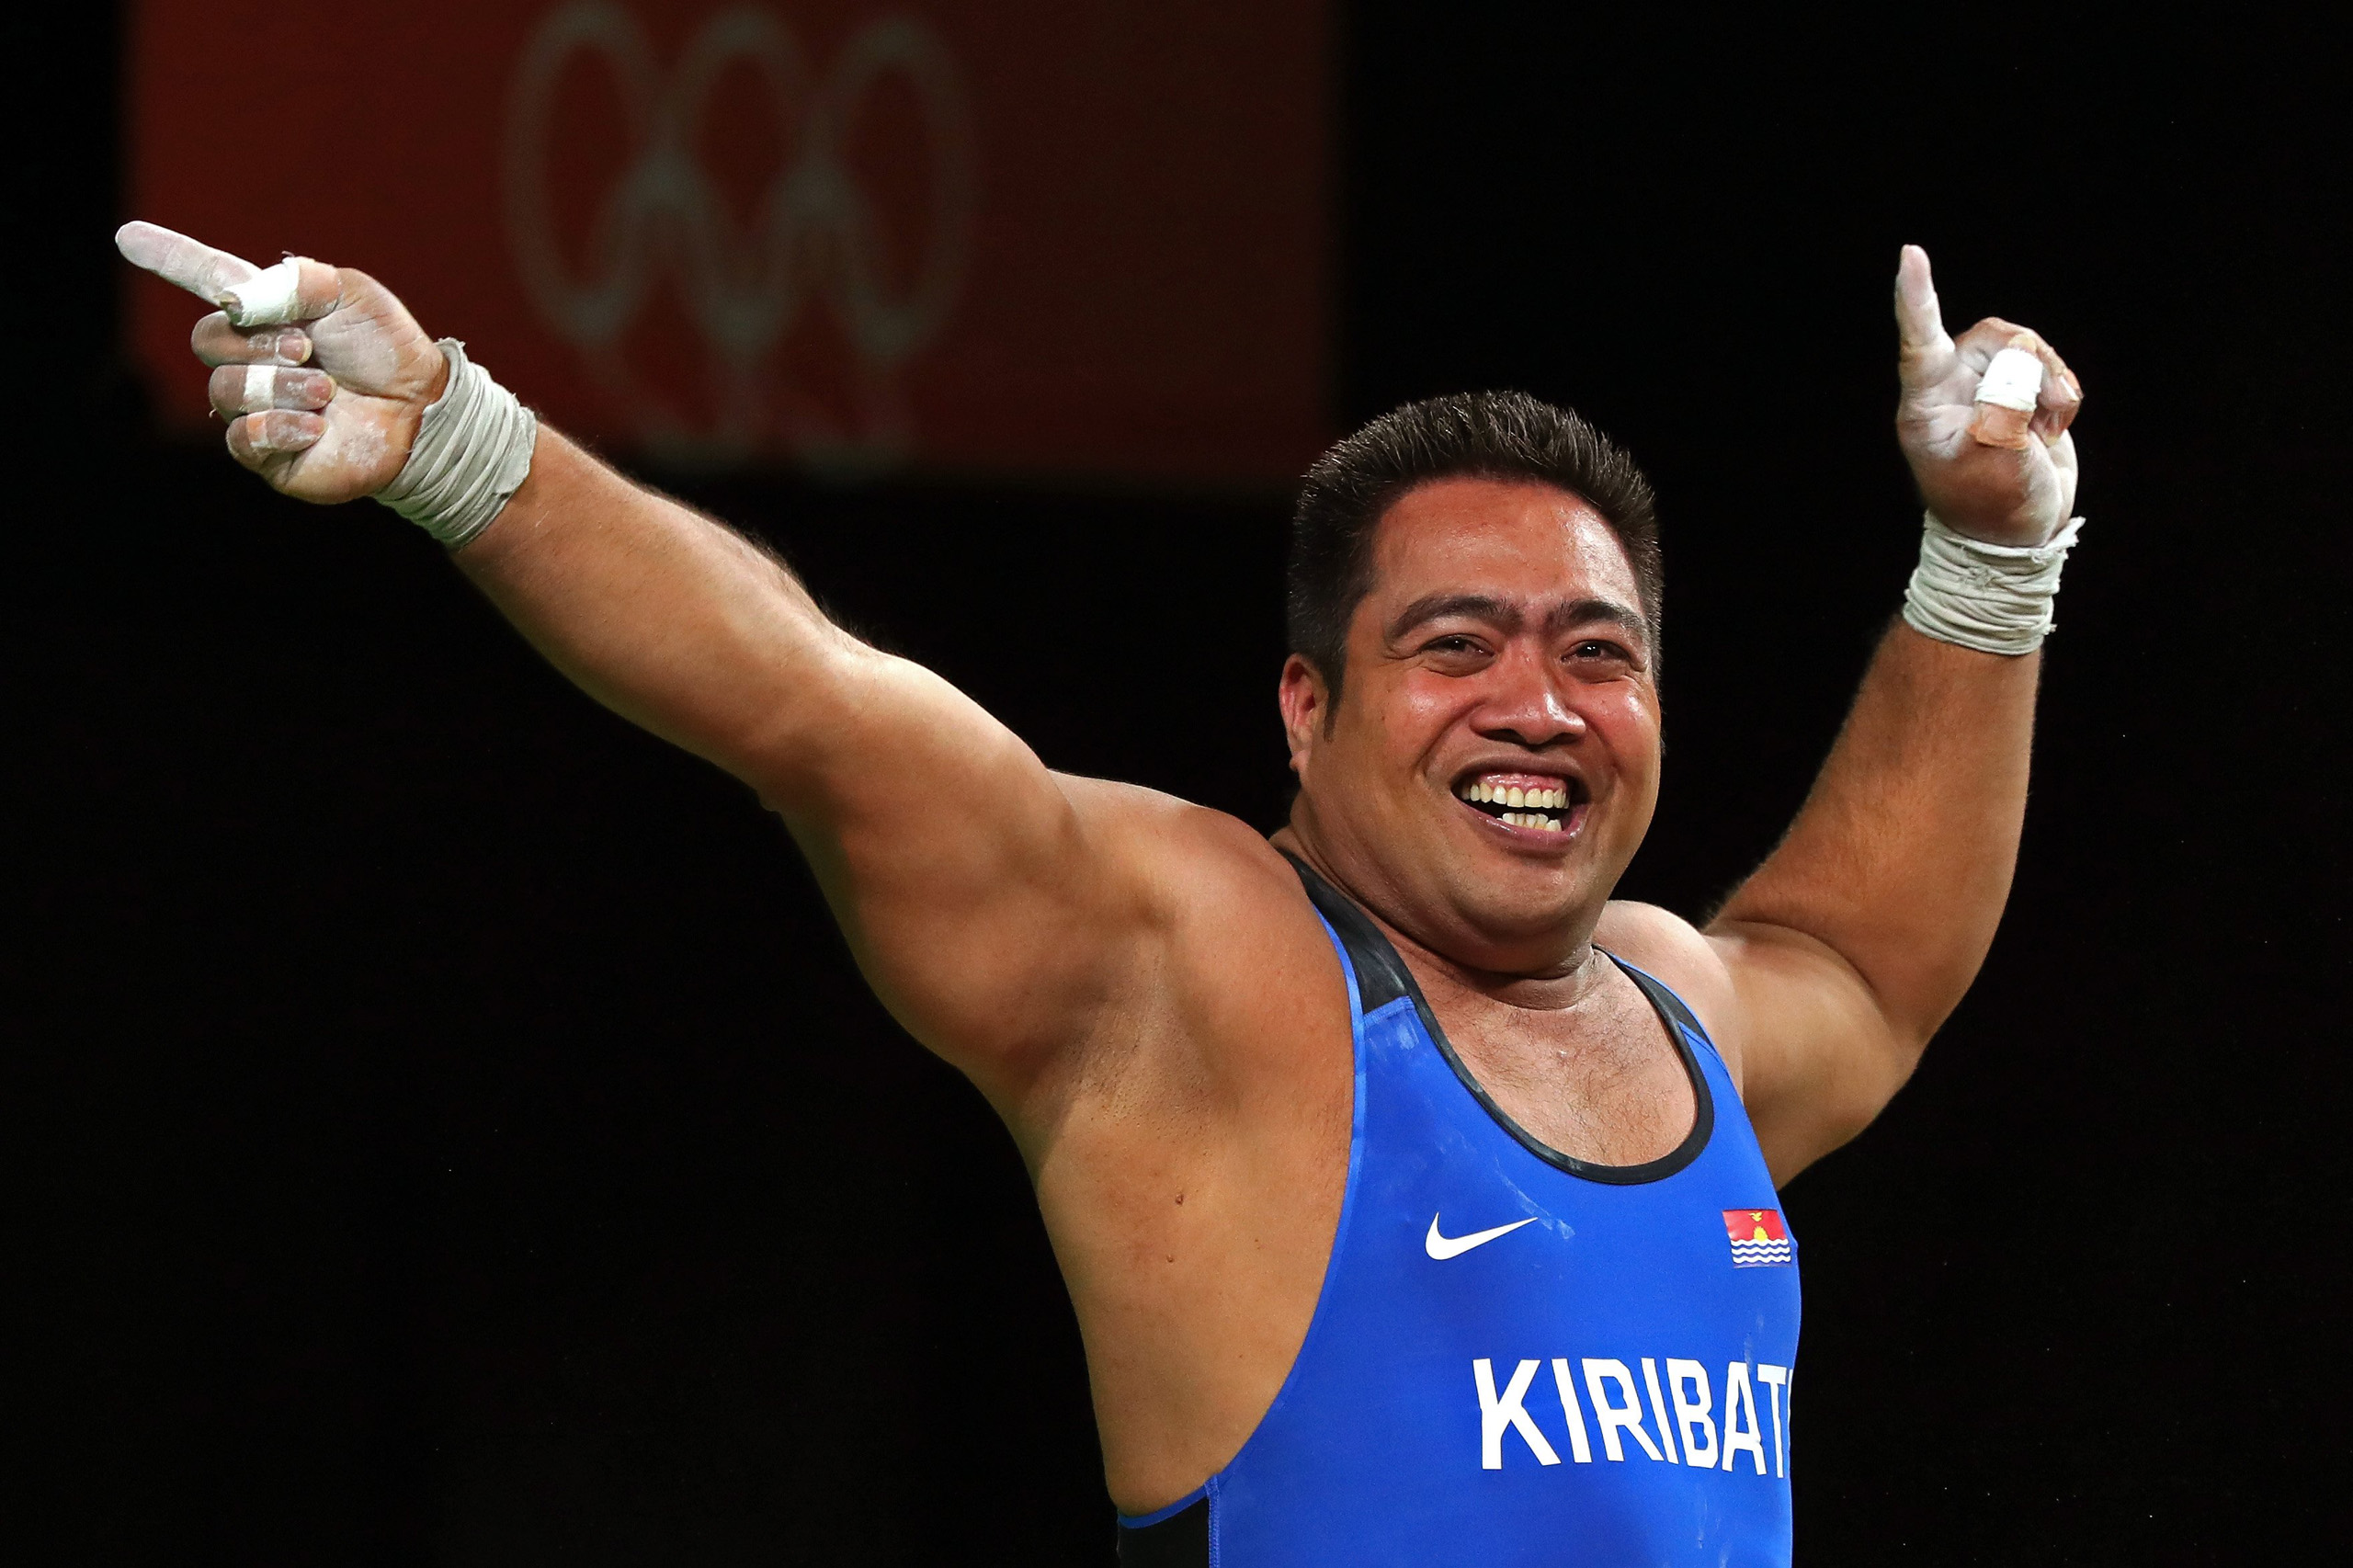 David Katoatau of Kiribati dances during the Men's 105kg Group B Weightlifting event on Day 10 of the Rio 2016 Olympic Games at Riocentro - Pavilion 2 in Rio de Janeiro on Aug. 15, 2016.